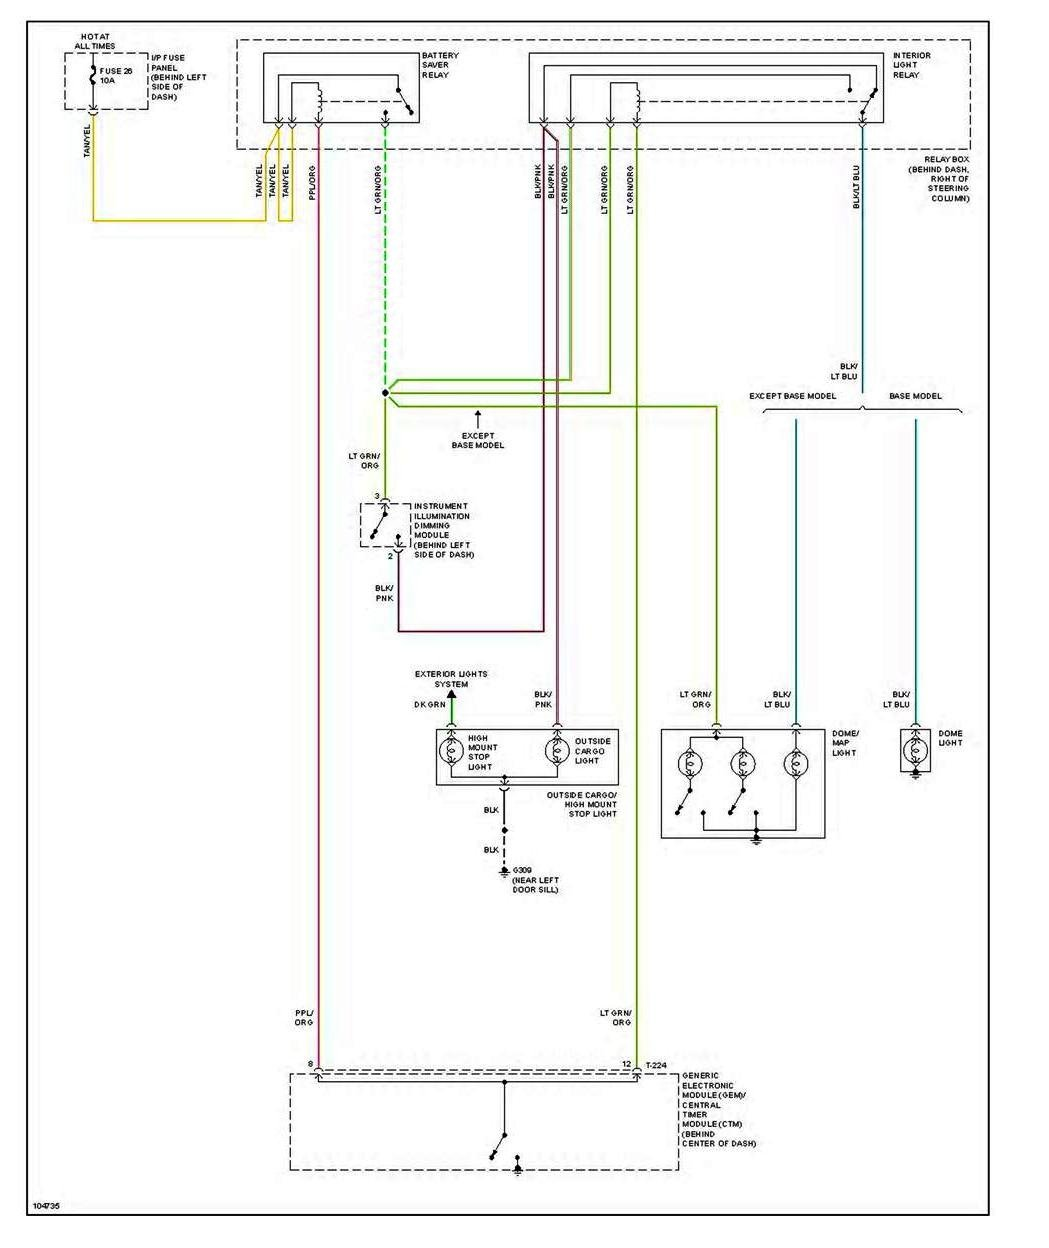 Do You Have A Wiring Diagram For A 1998 Mazda B2500 W  2 5 5spd  I Need It For The Entire Truck